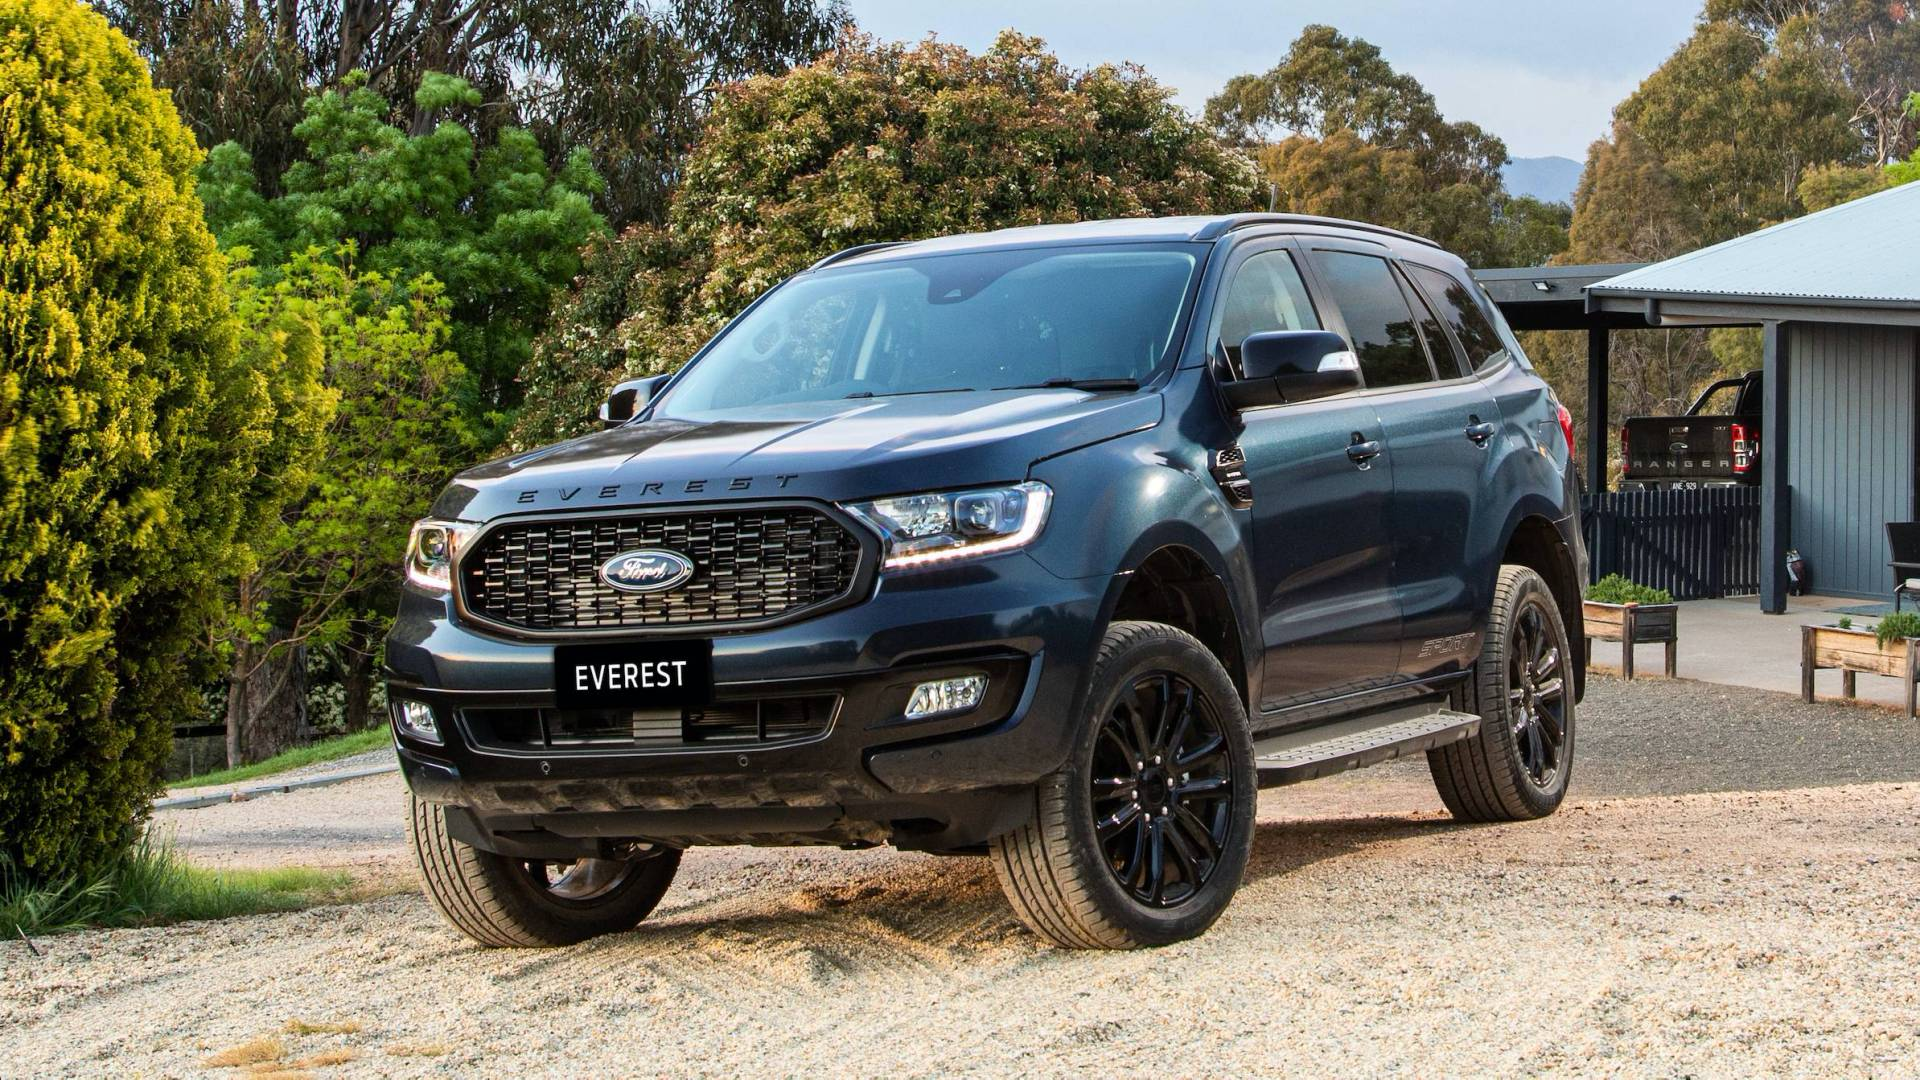 2020-ford-everest-sport-australia-spec-6.jpg